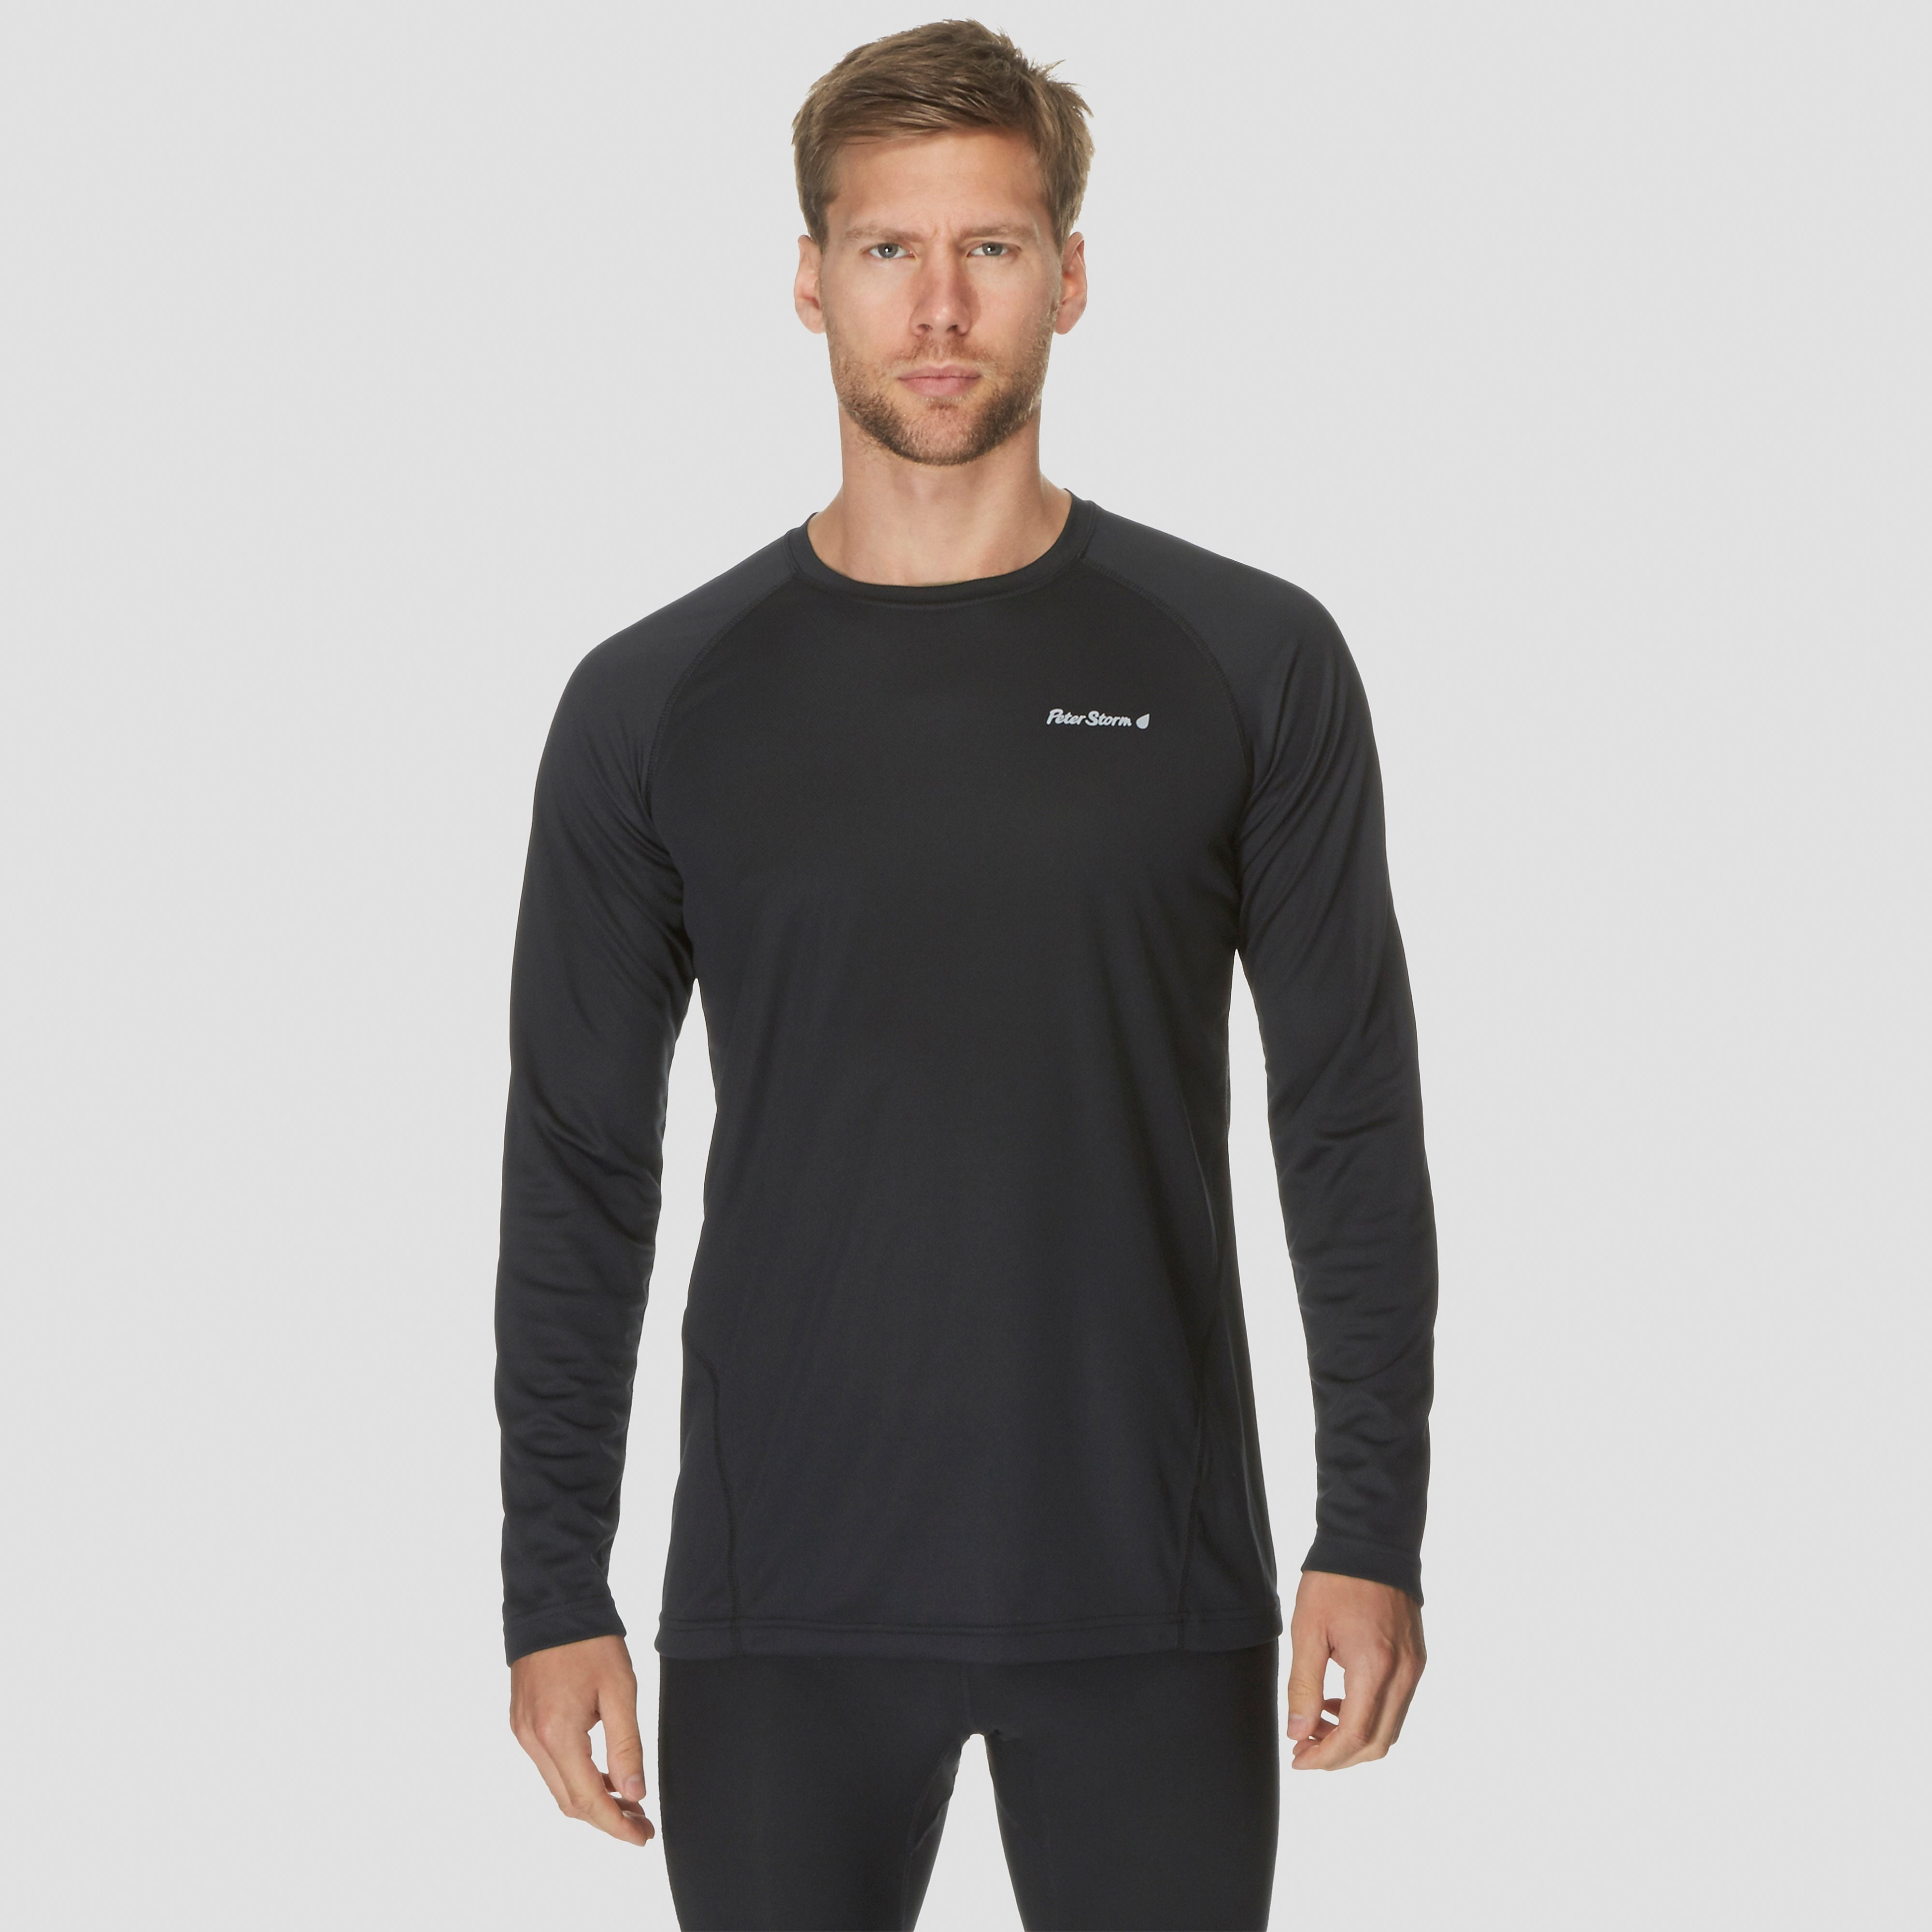 Peter Storm Men's Tech Long Sleeve Crew T-Shirt